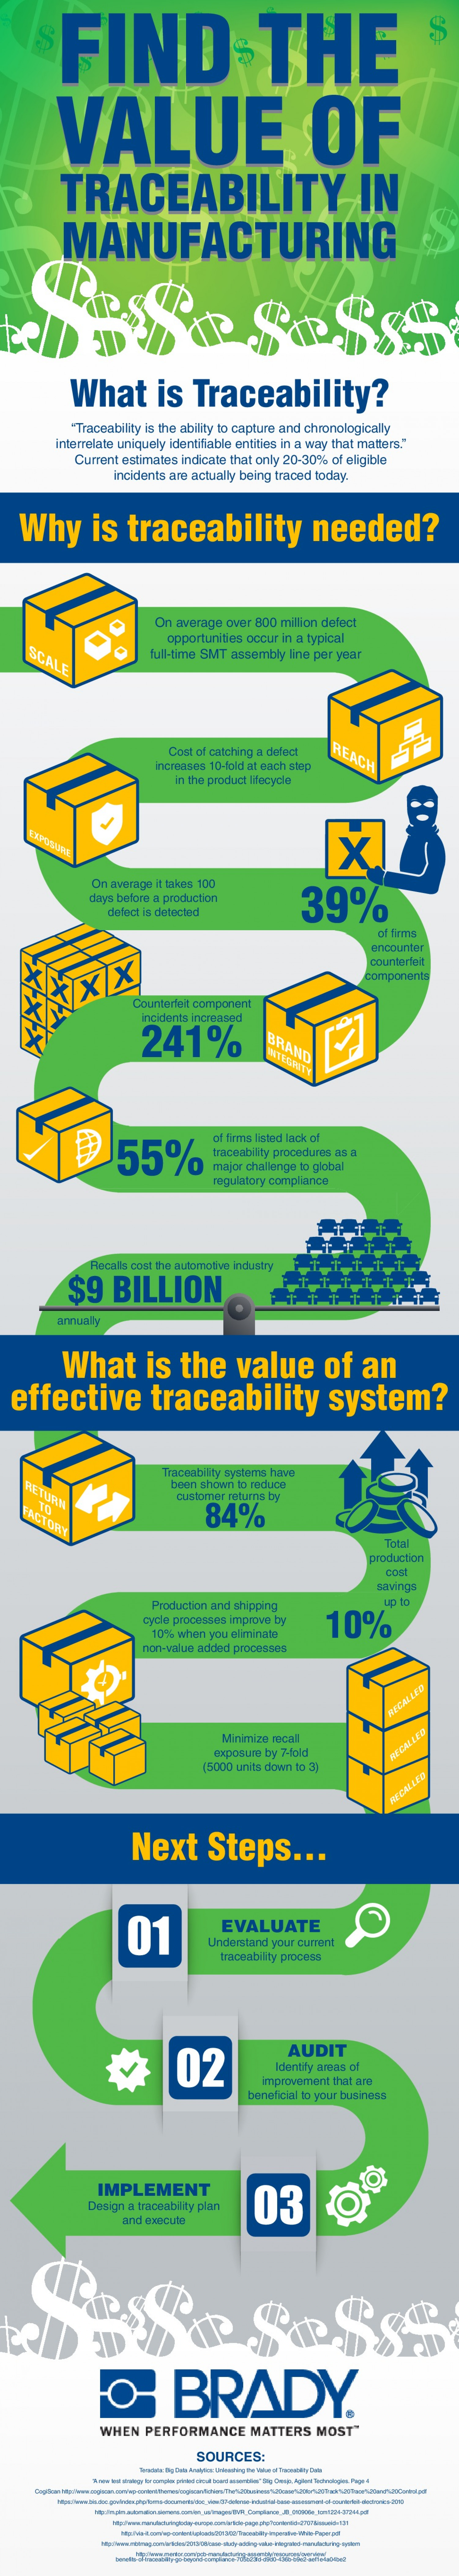 Find The Value of Traceability in Manufacturing Infographic